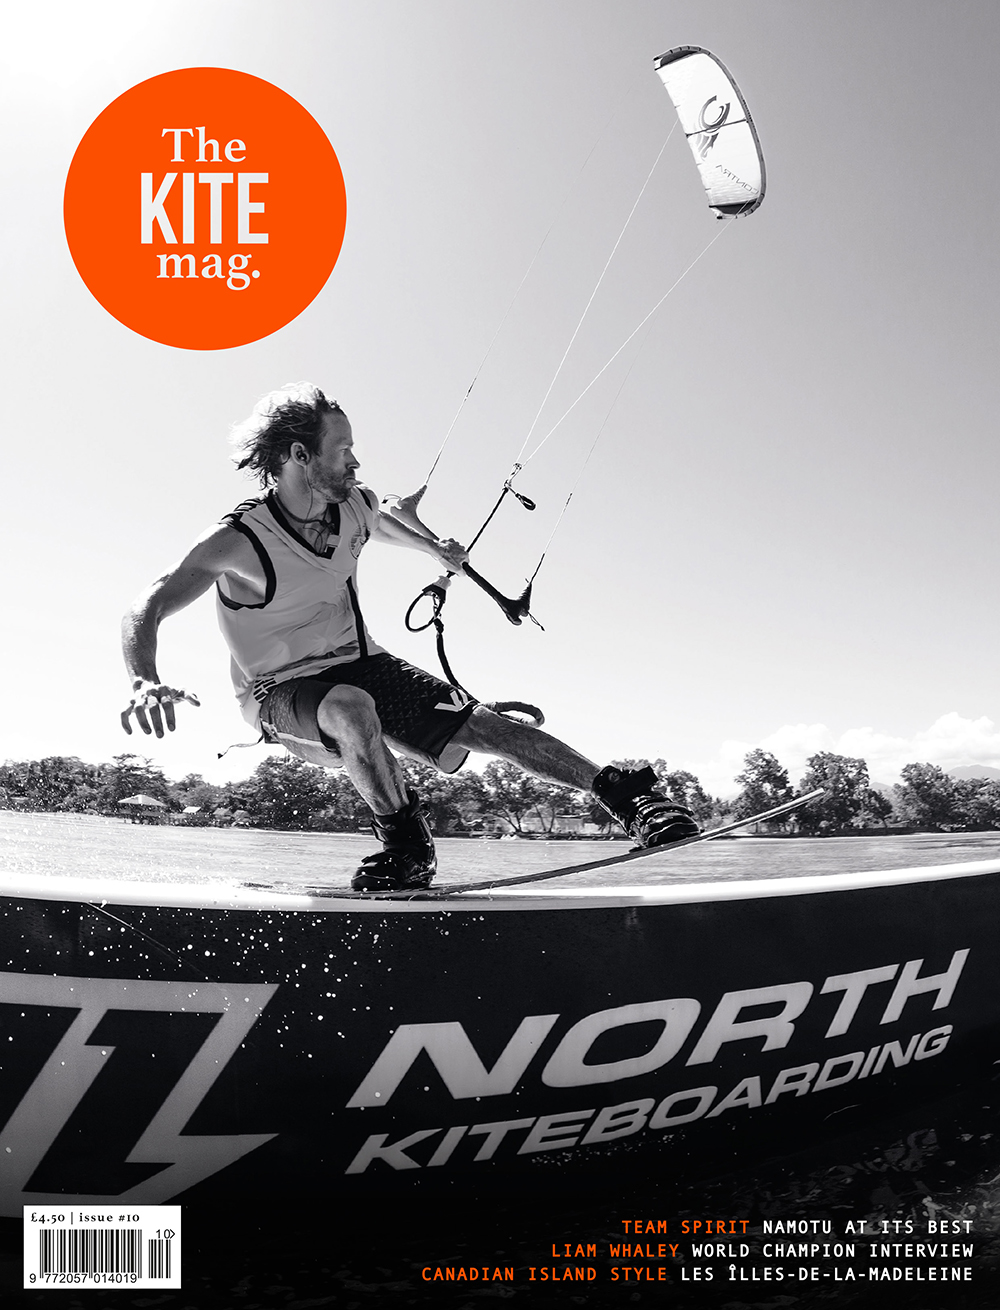 TLM 10 Cover - TheKiteMag issue #10